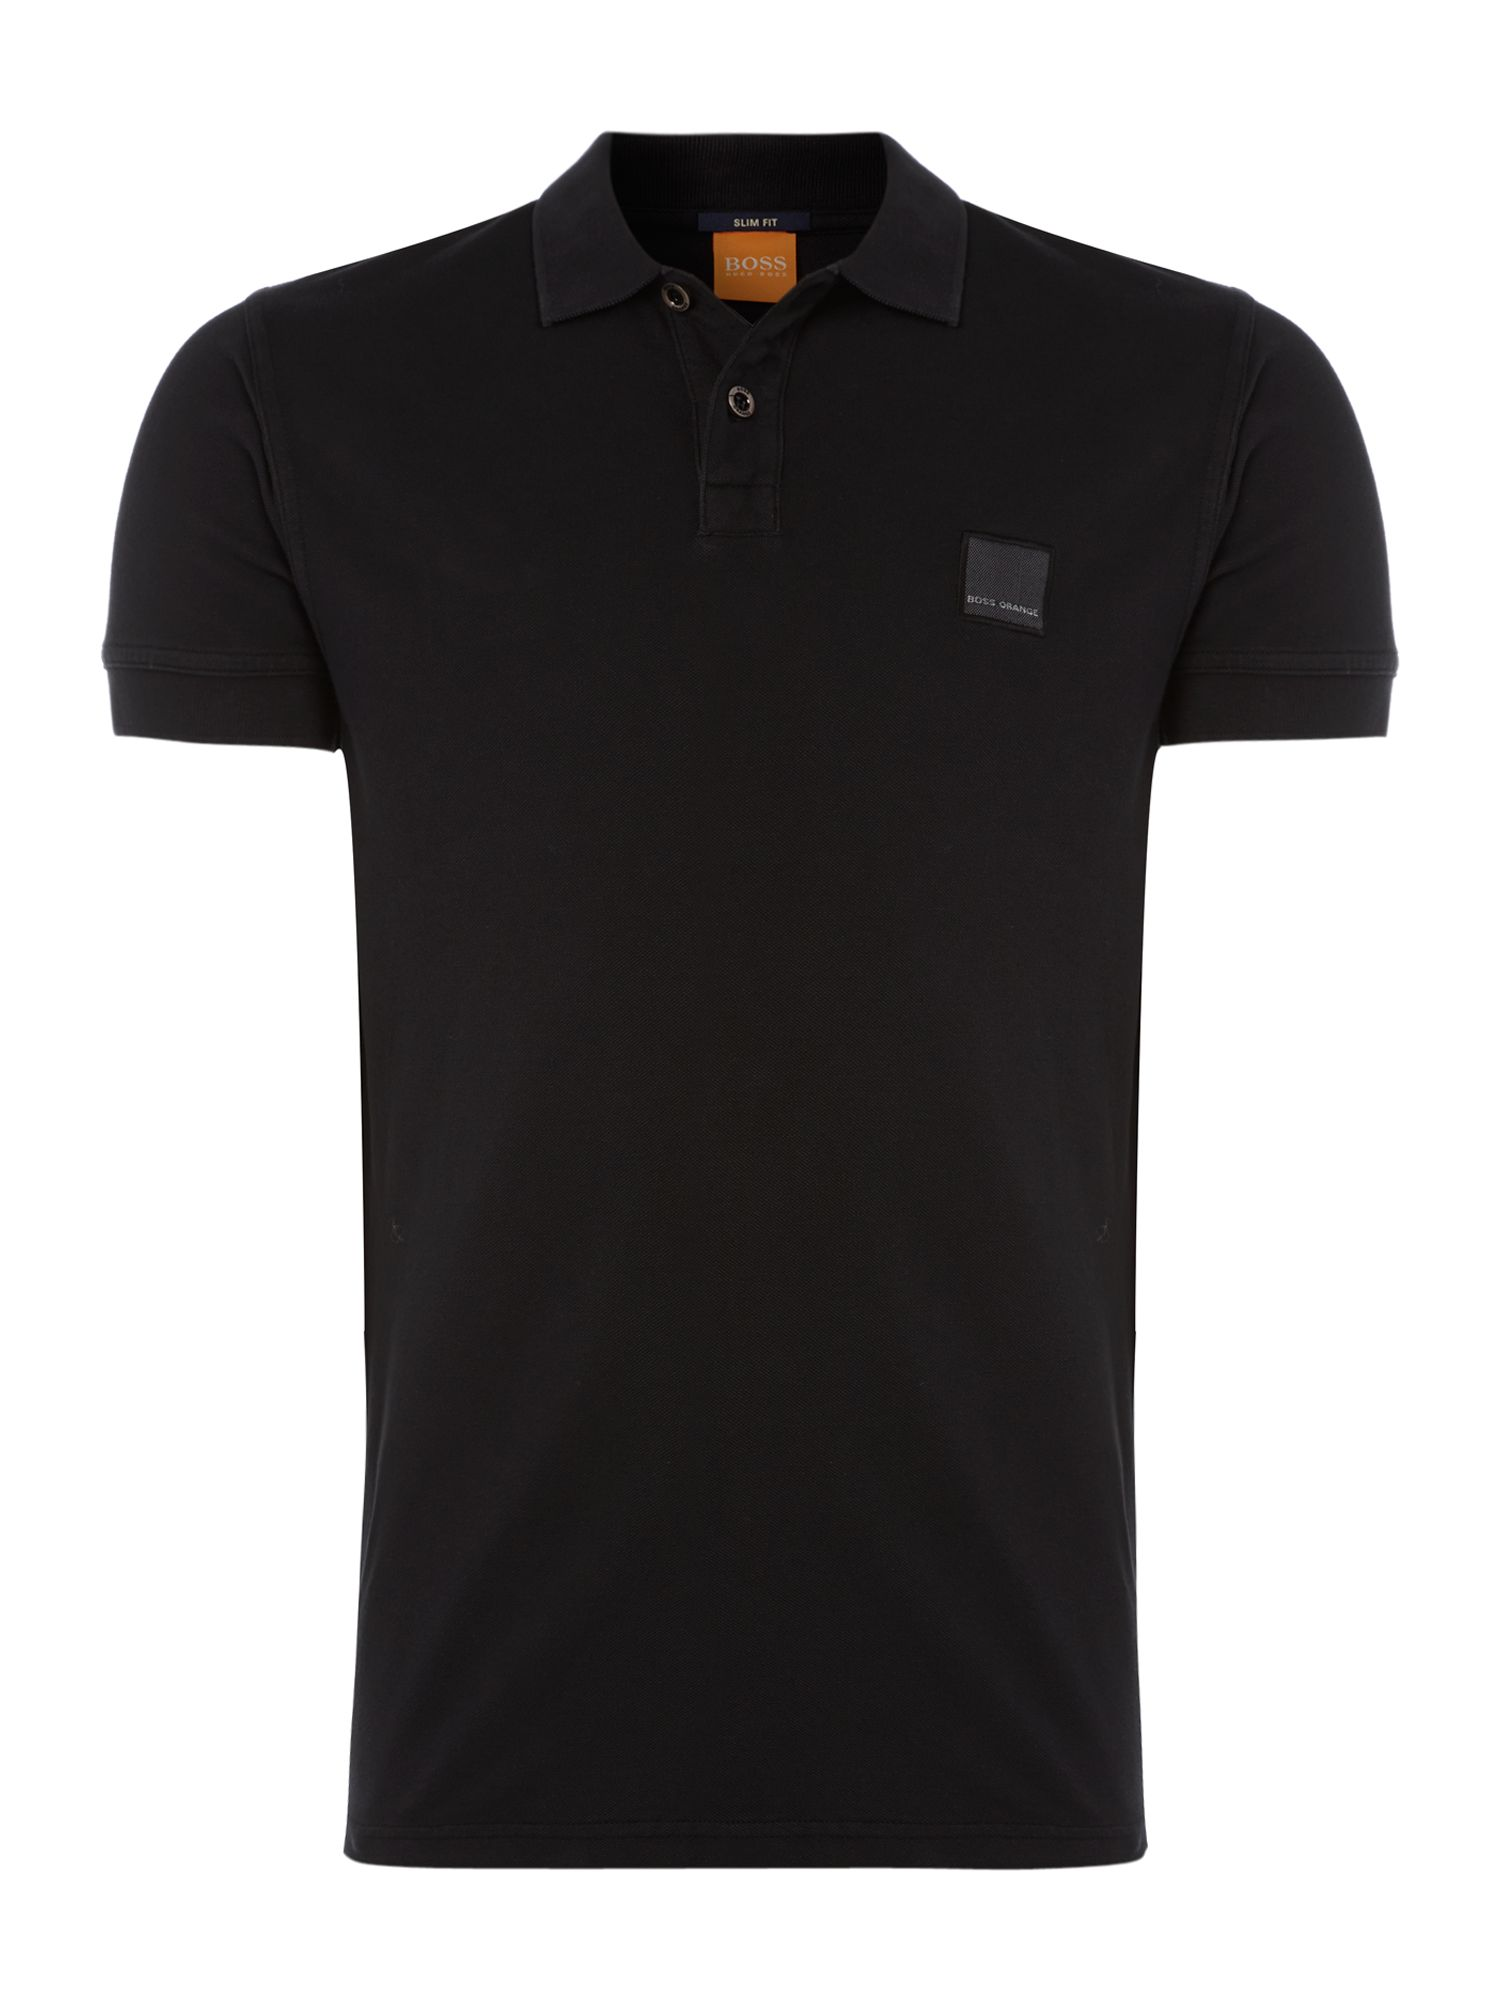 Men's Hugo Boss Pascha slim fit logo polo shirt, Black